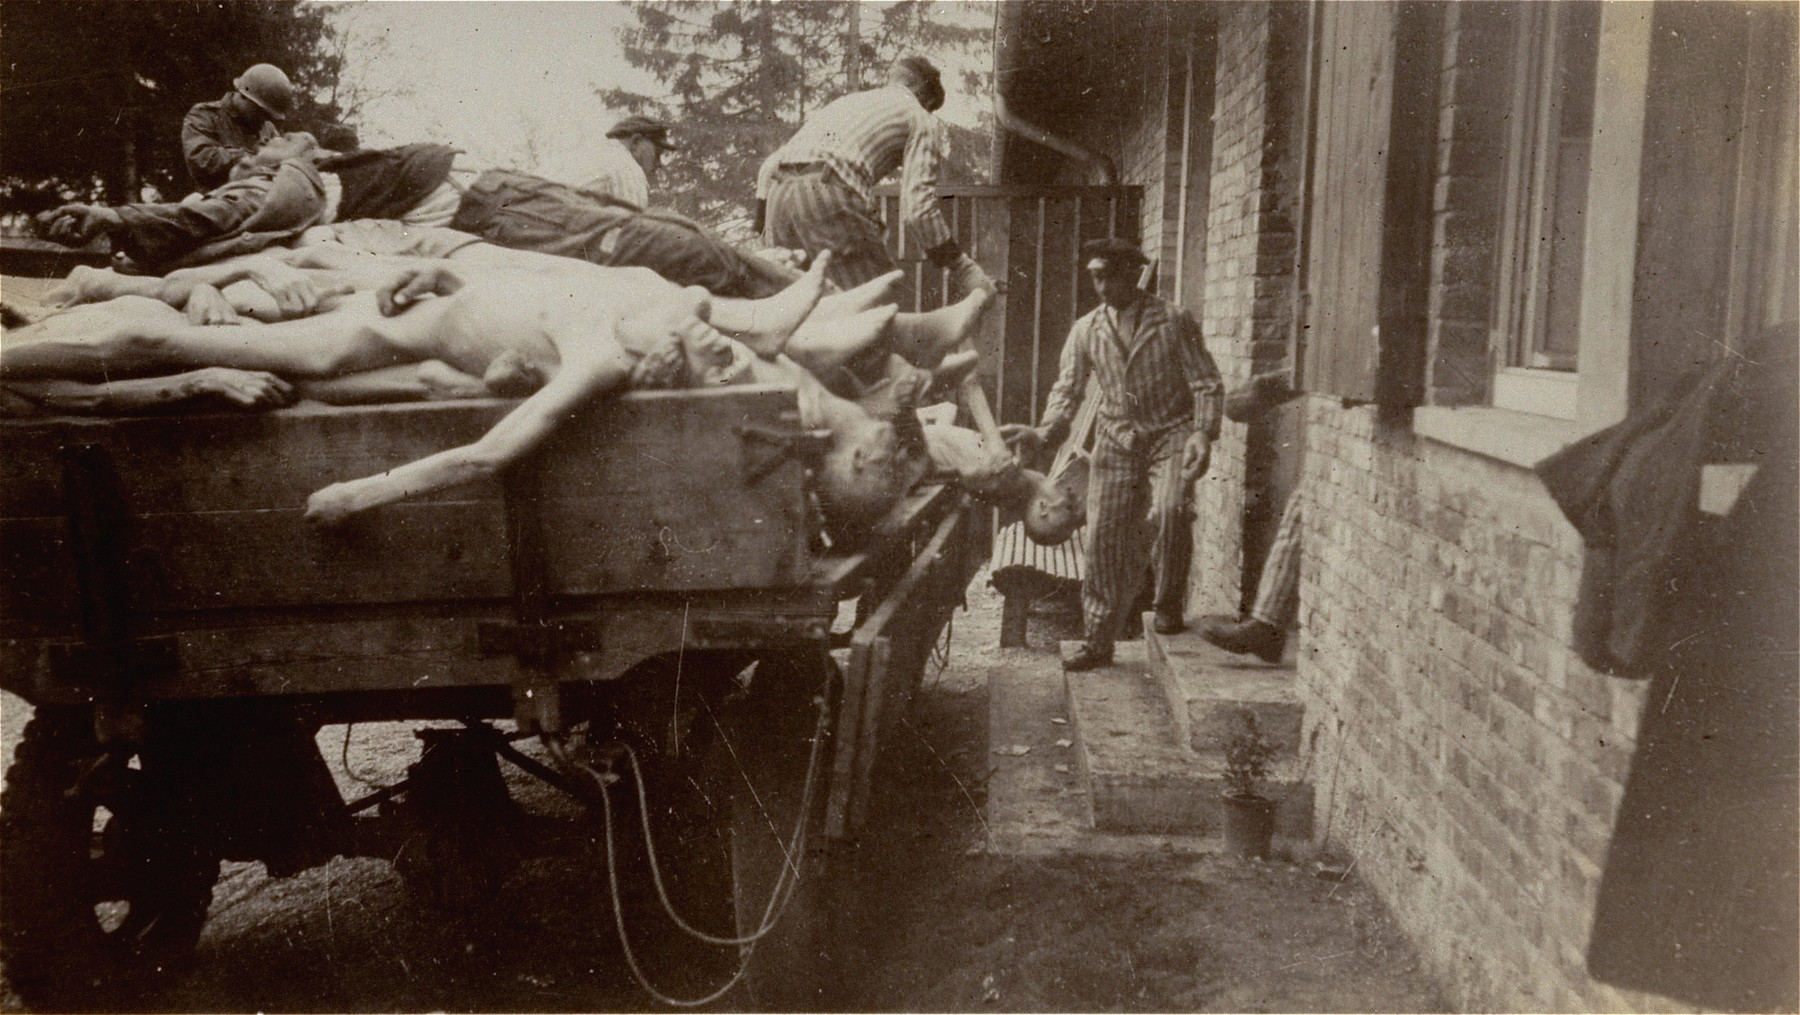 Survivors in Dachau remove bodies from the cellar of the crematorium.